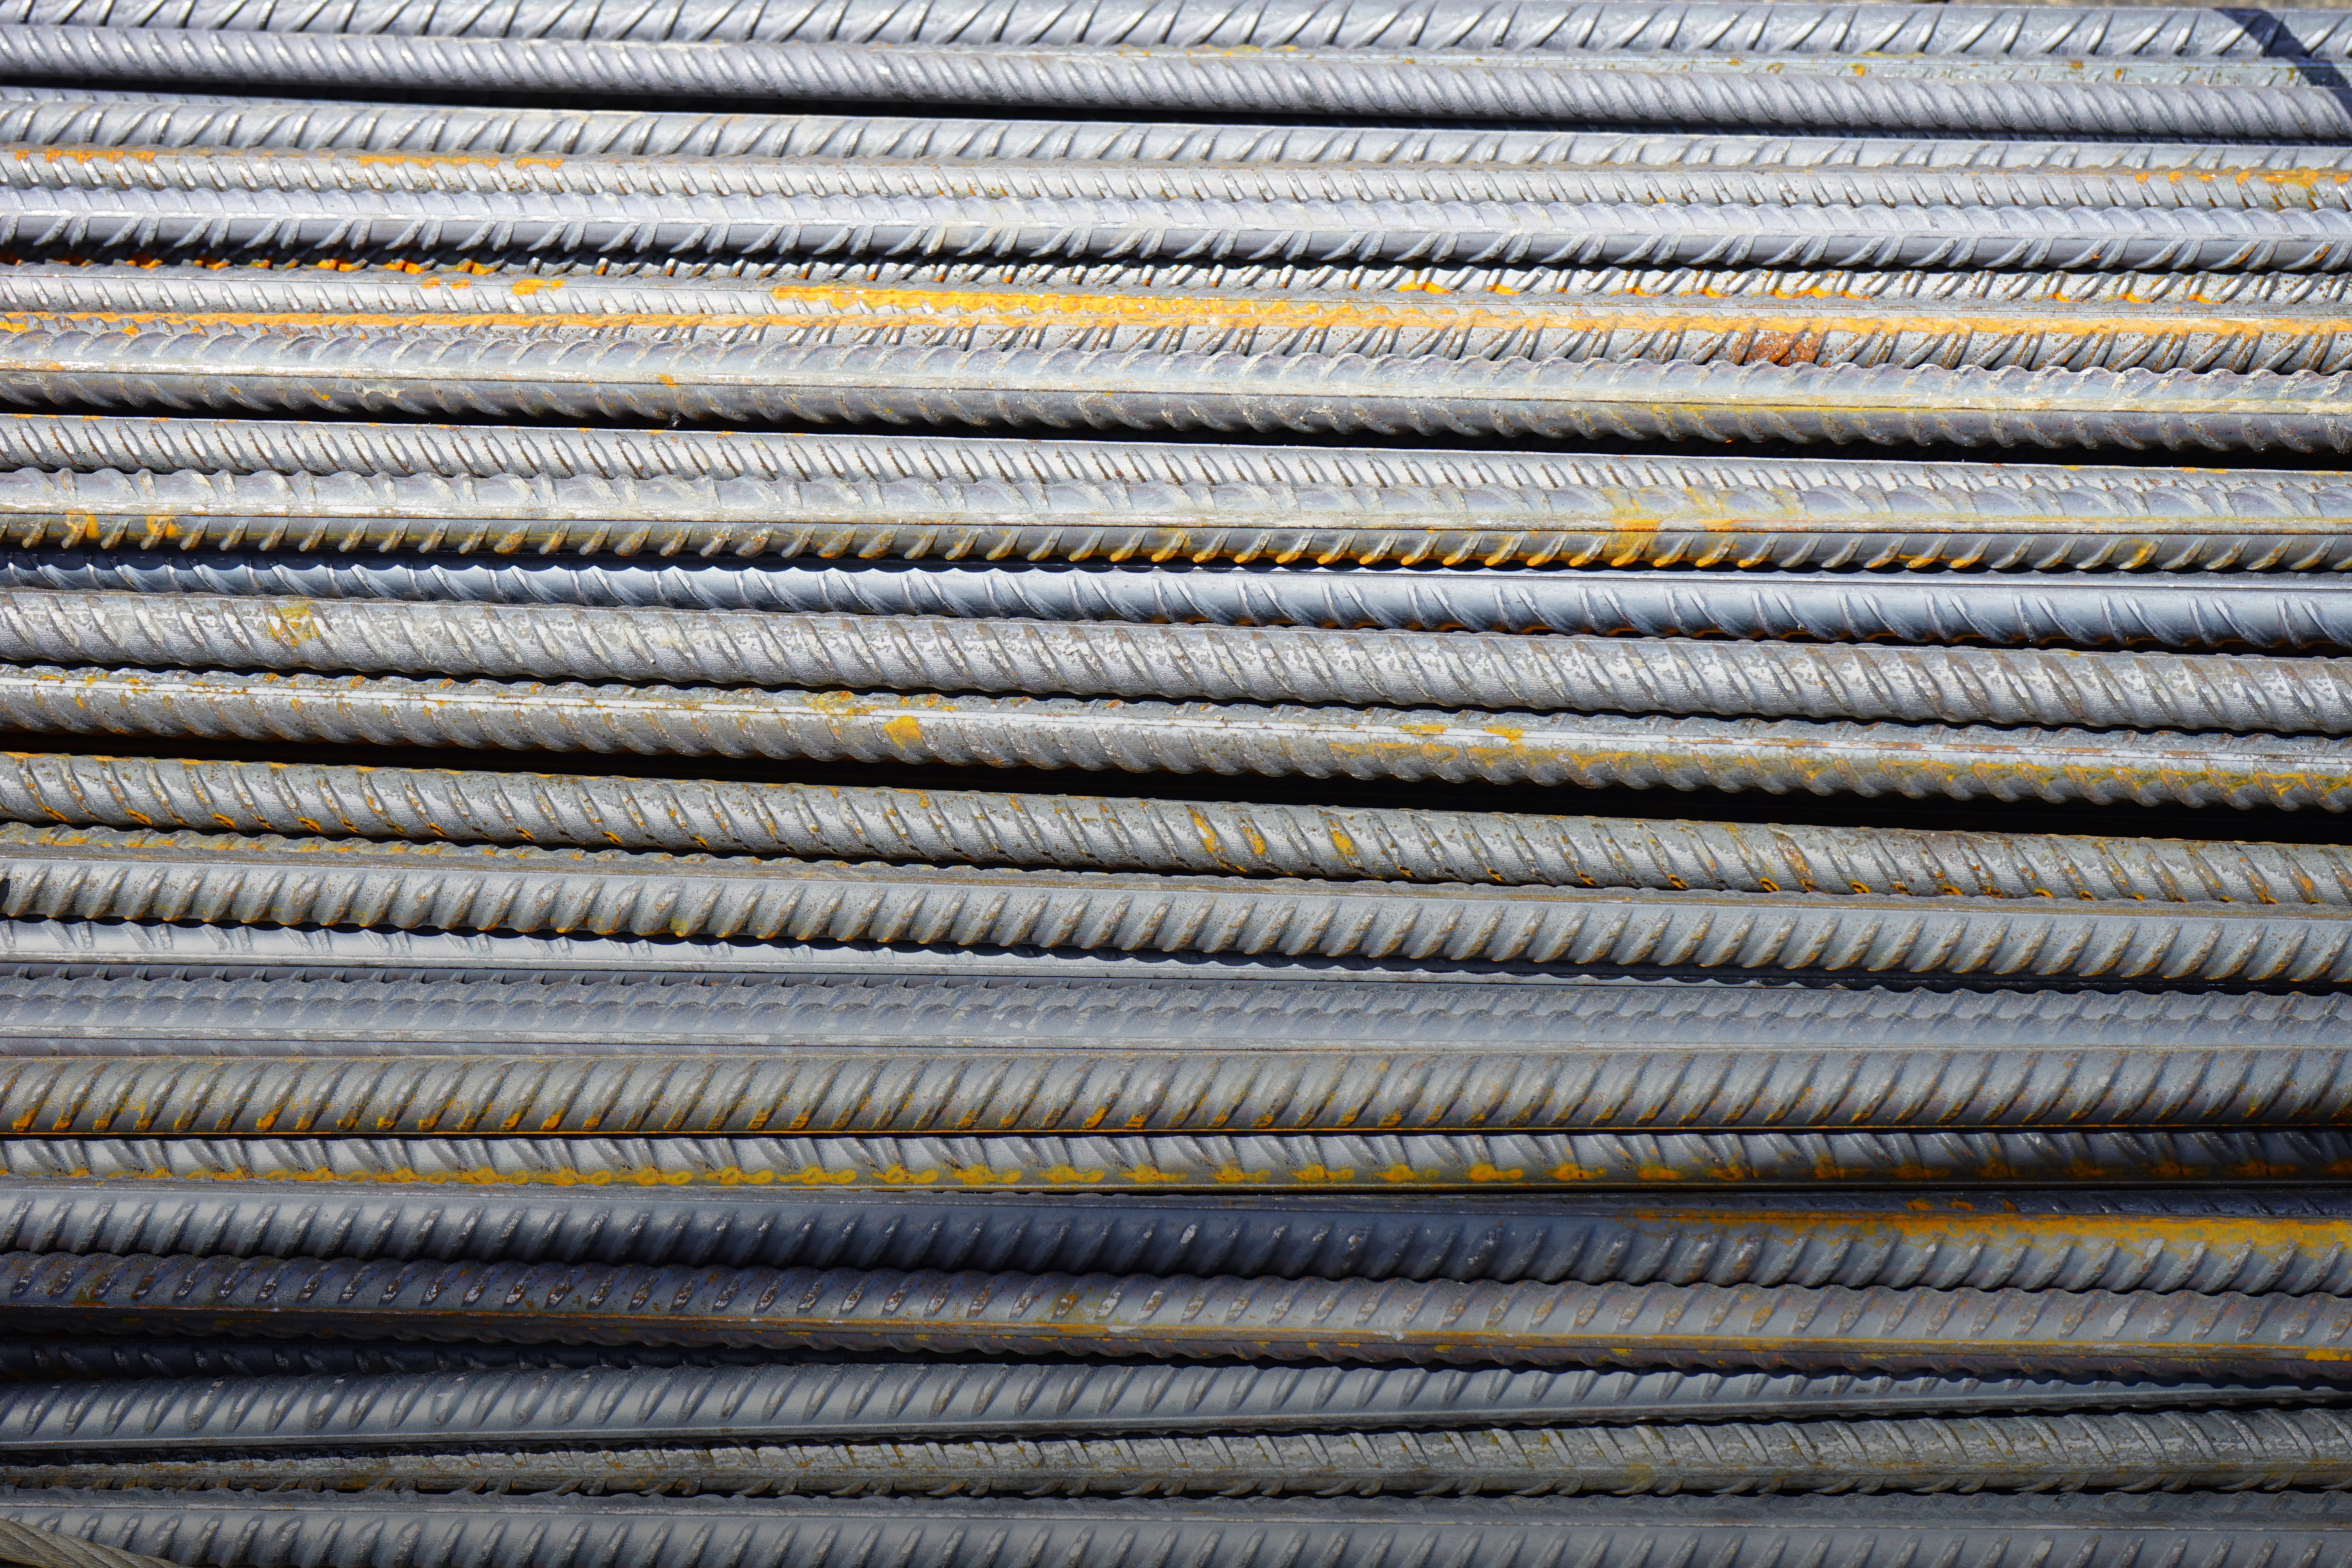 iron-rods-reinforcing-bars-rods-steel-bars-46167.png